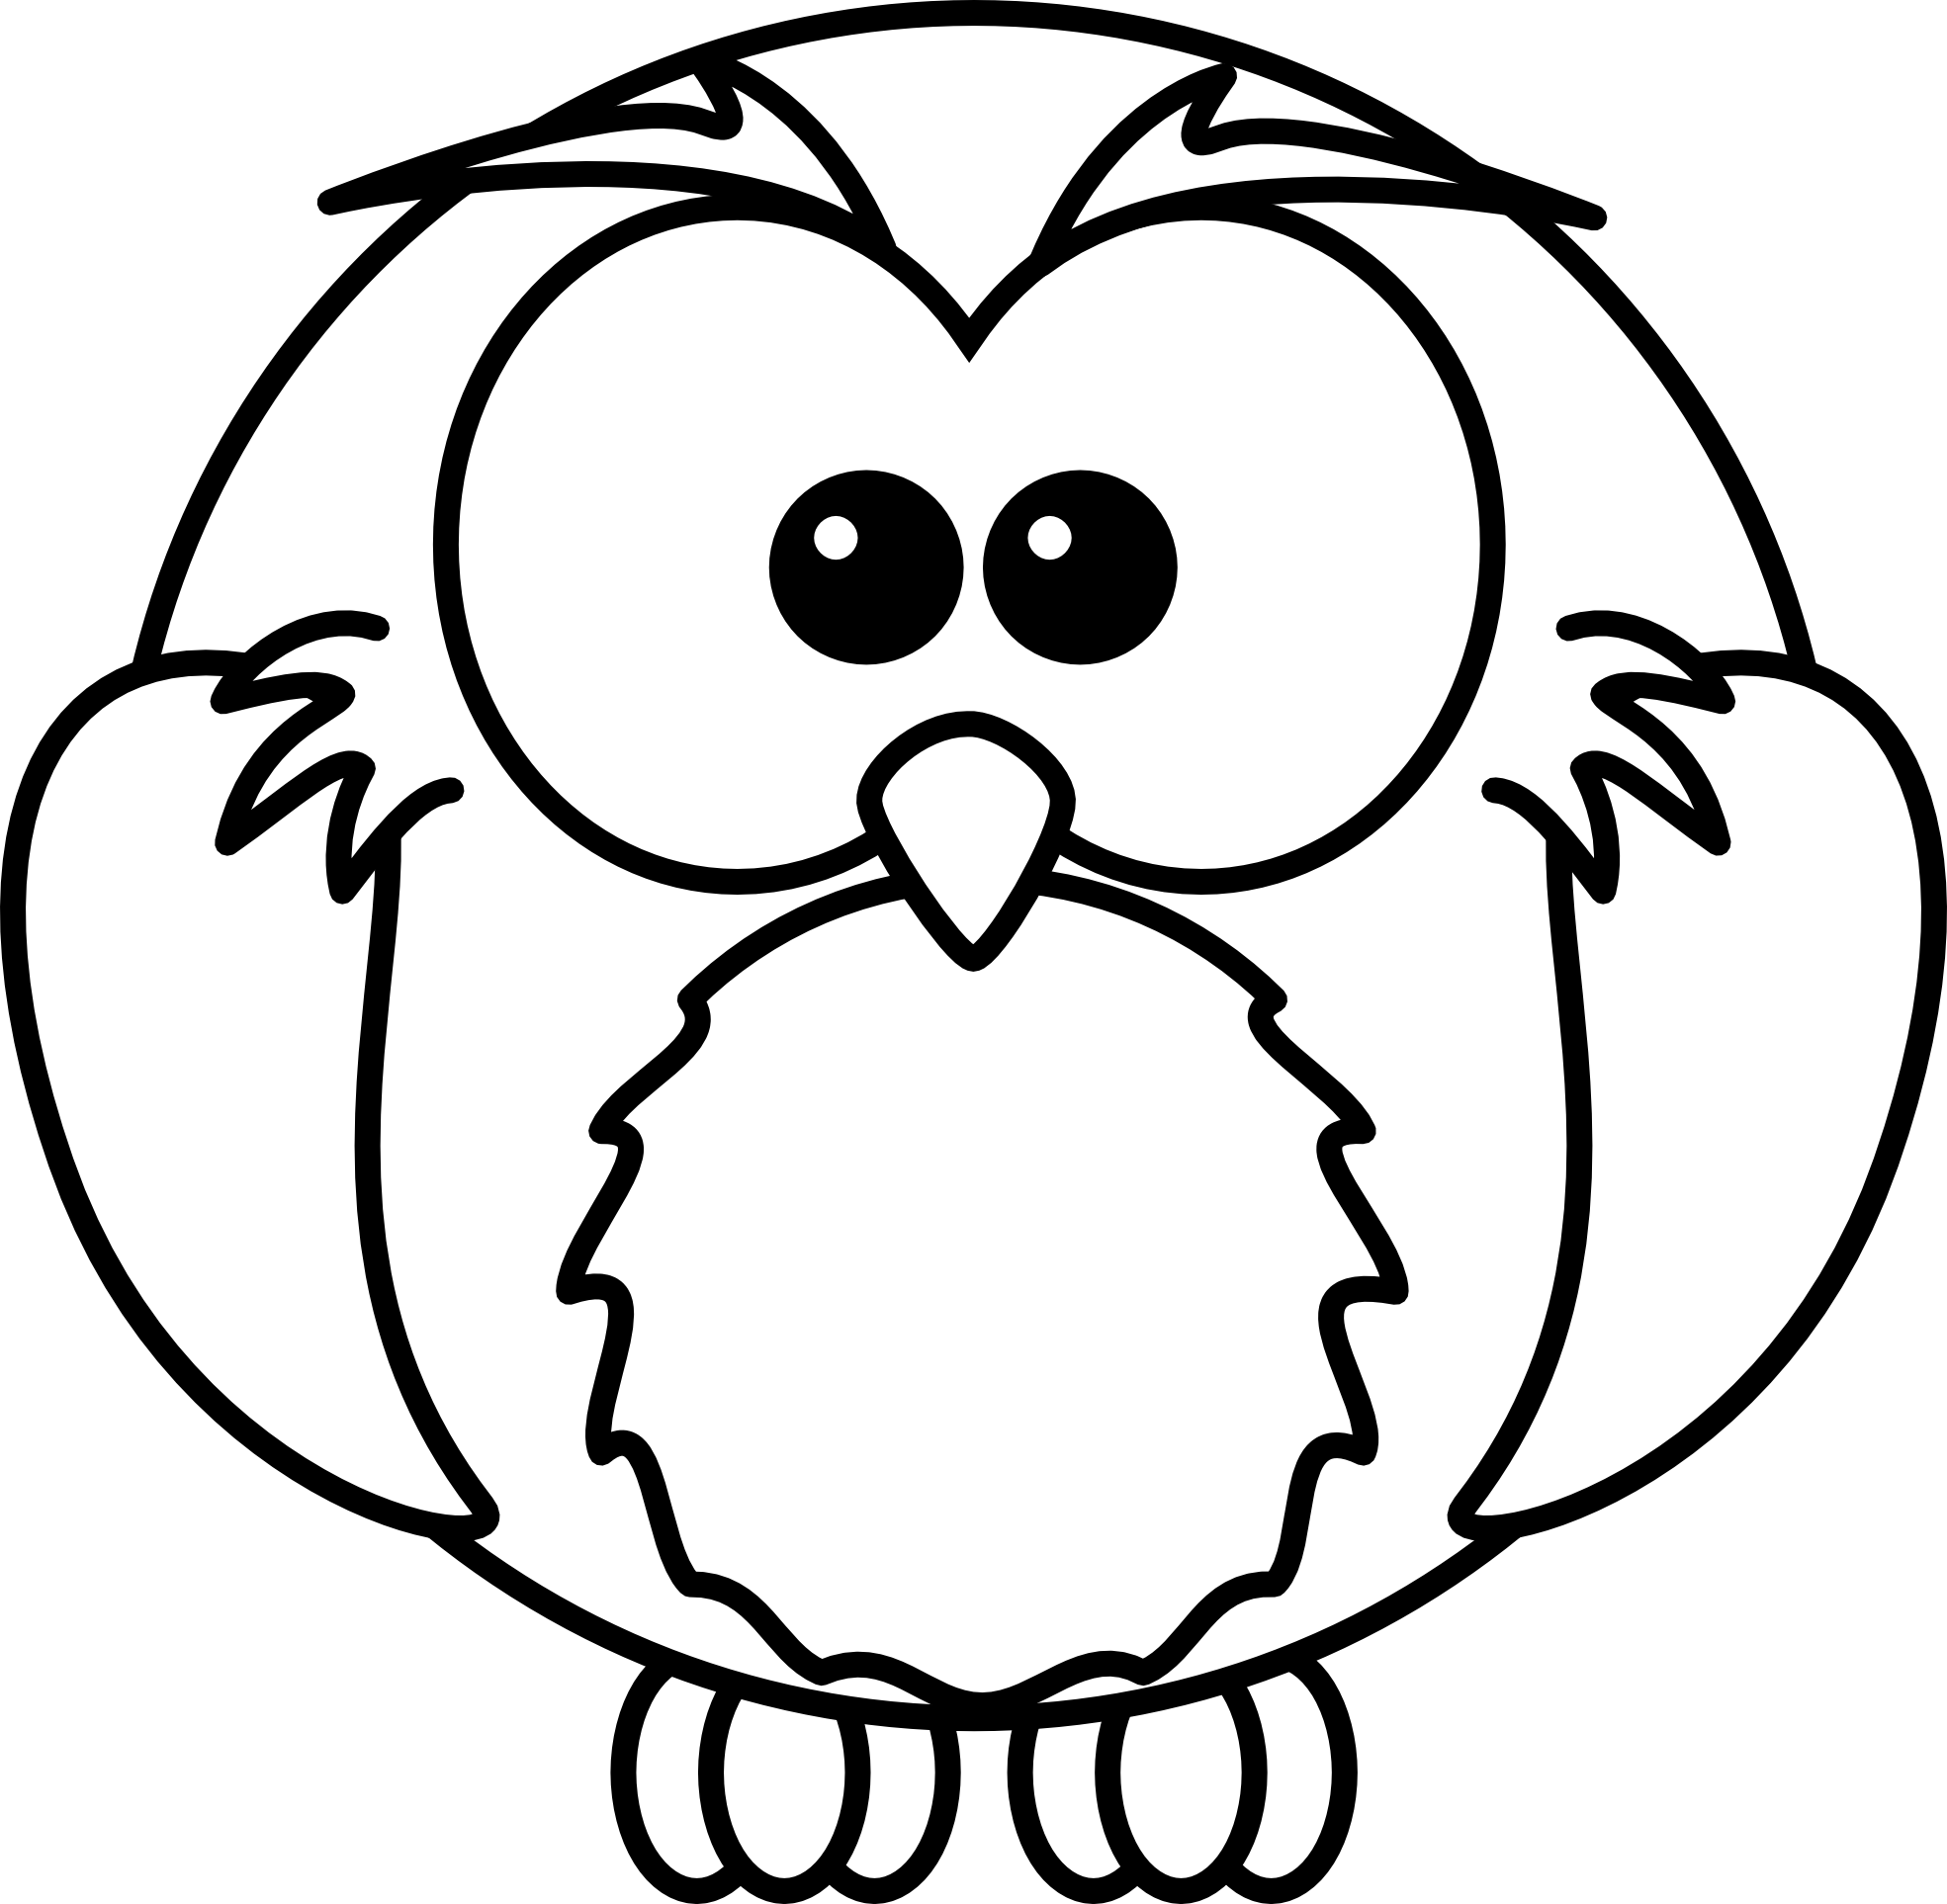 Baby Owl Clipart Black And White Cartoon-Baby Owl Clipart Black And White Cartoon Clip Art Black And White 1-0